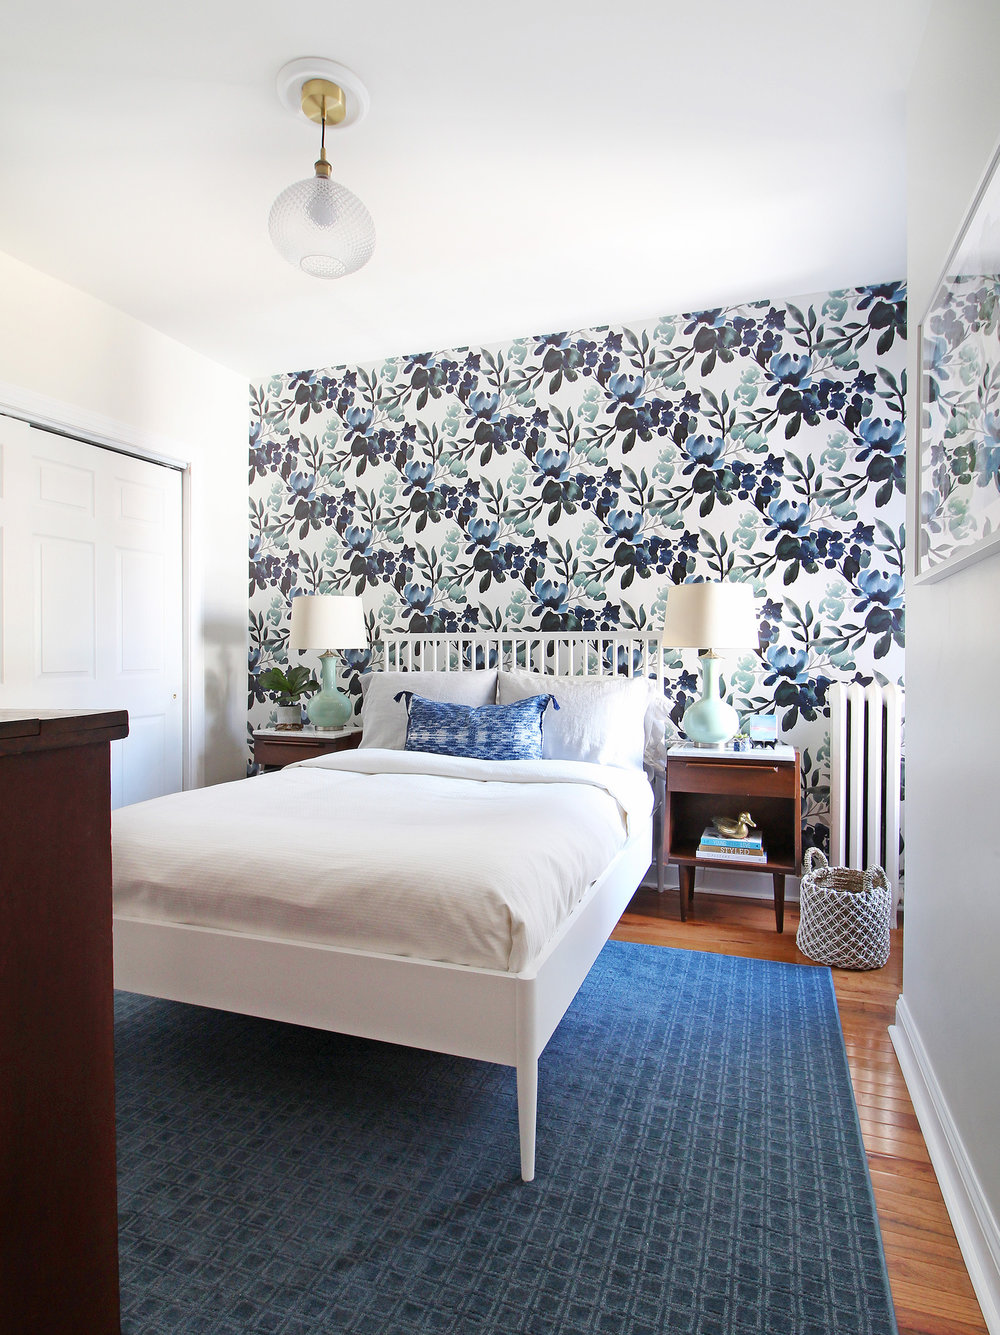 ORC-Eclectic-Modern-Farmhouse-Guest-Room-Web-34.jpg